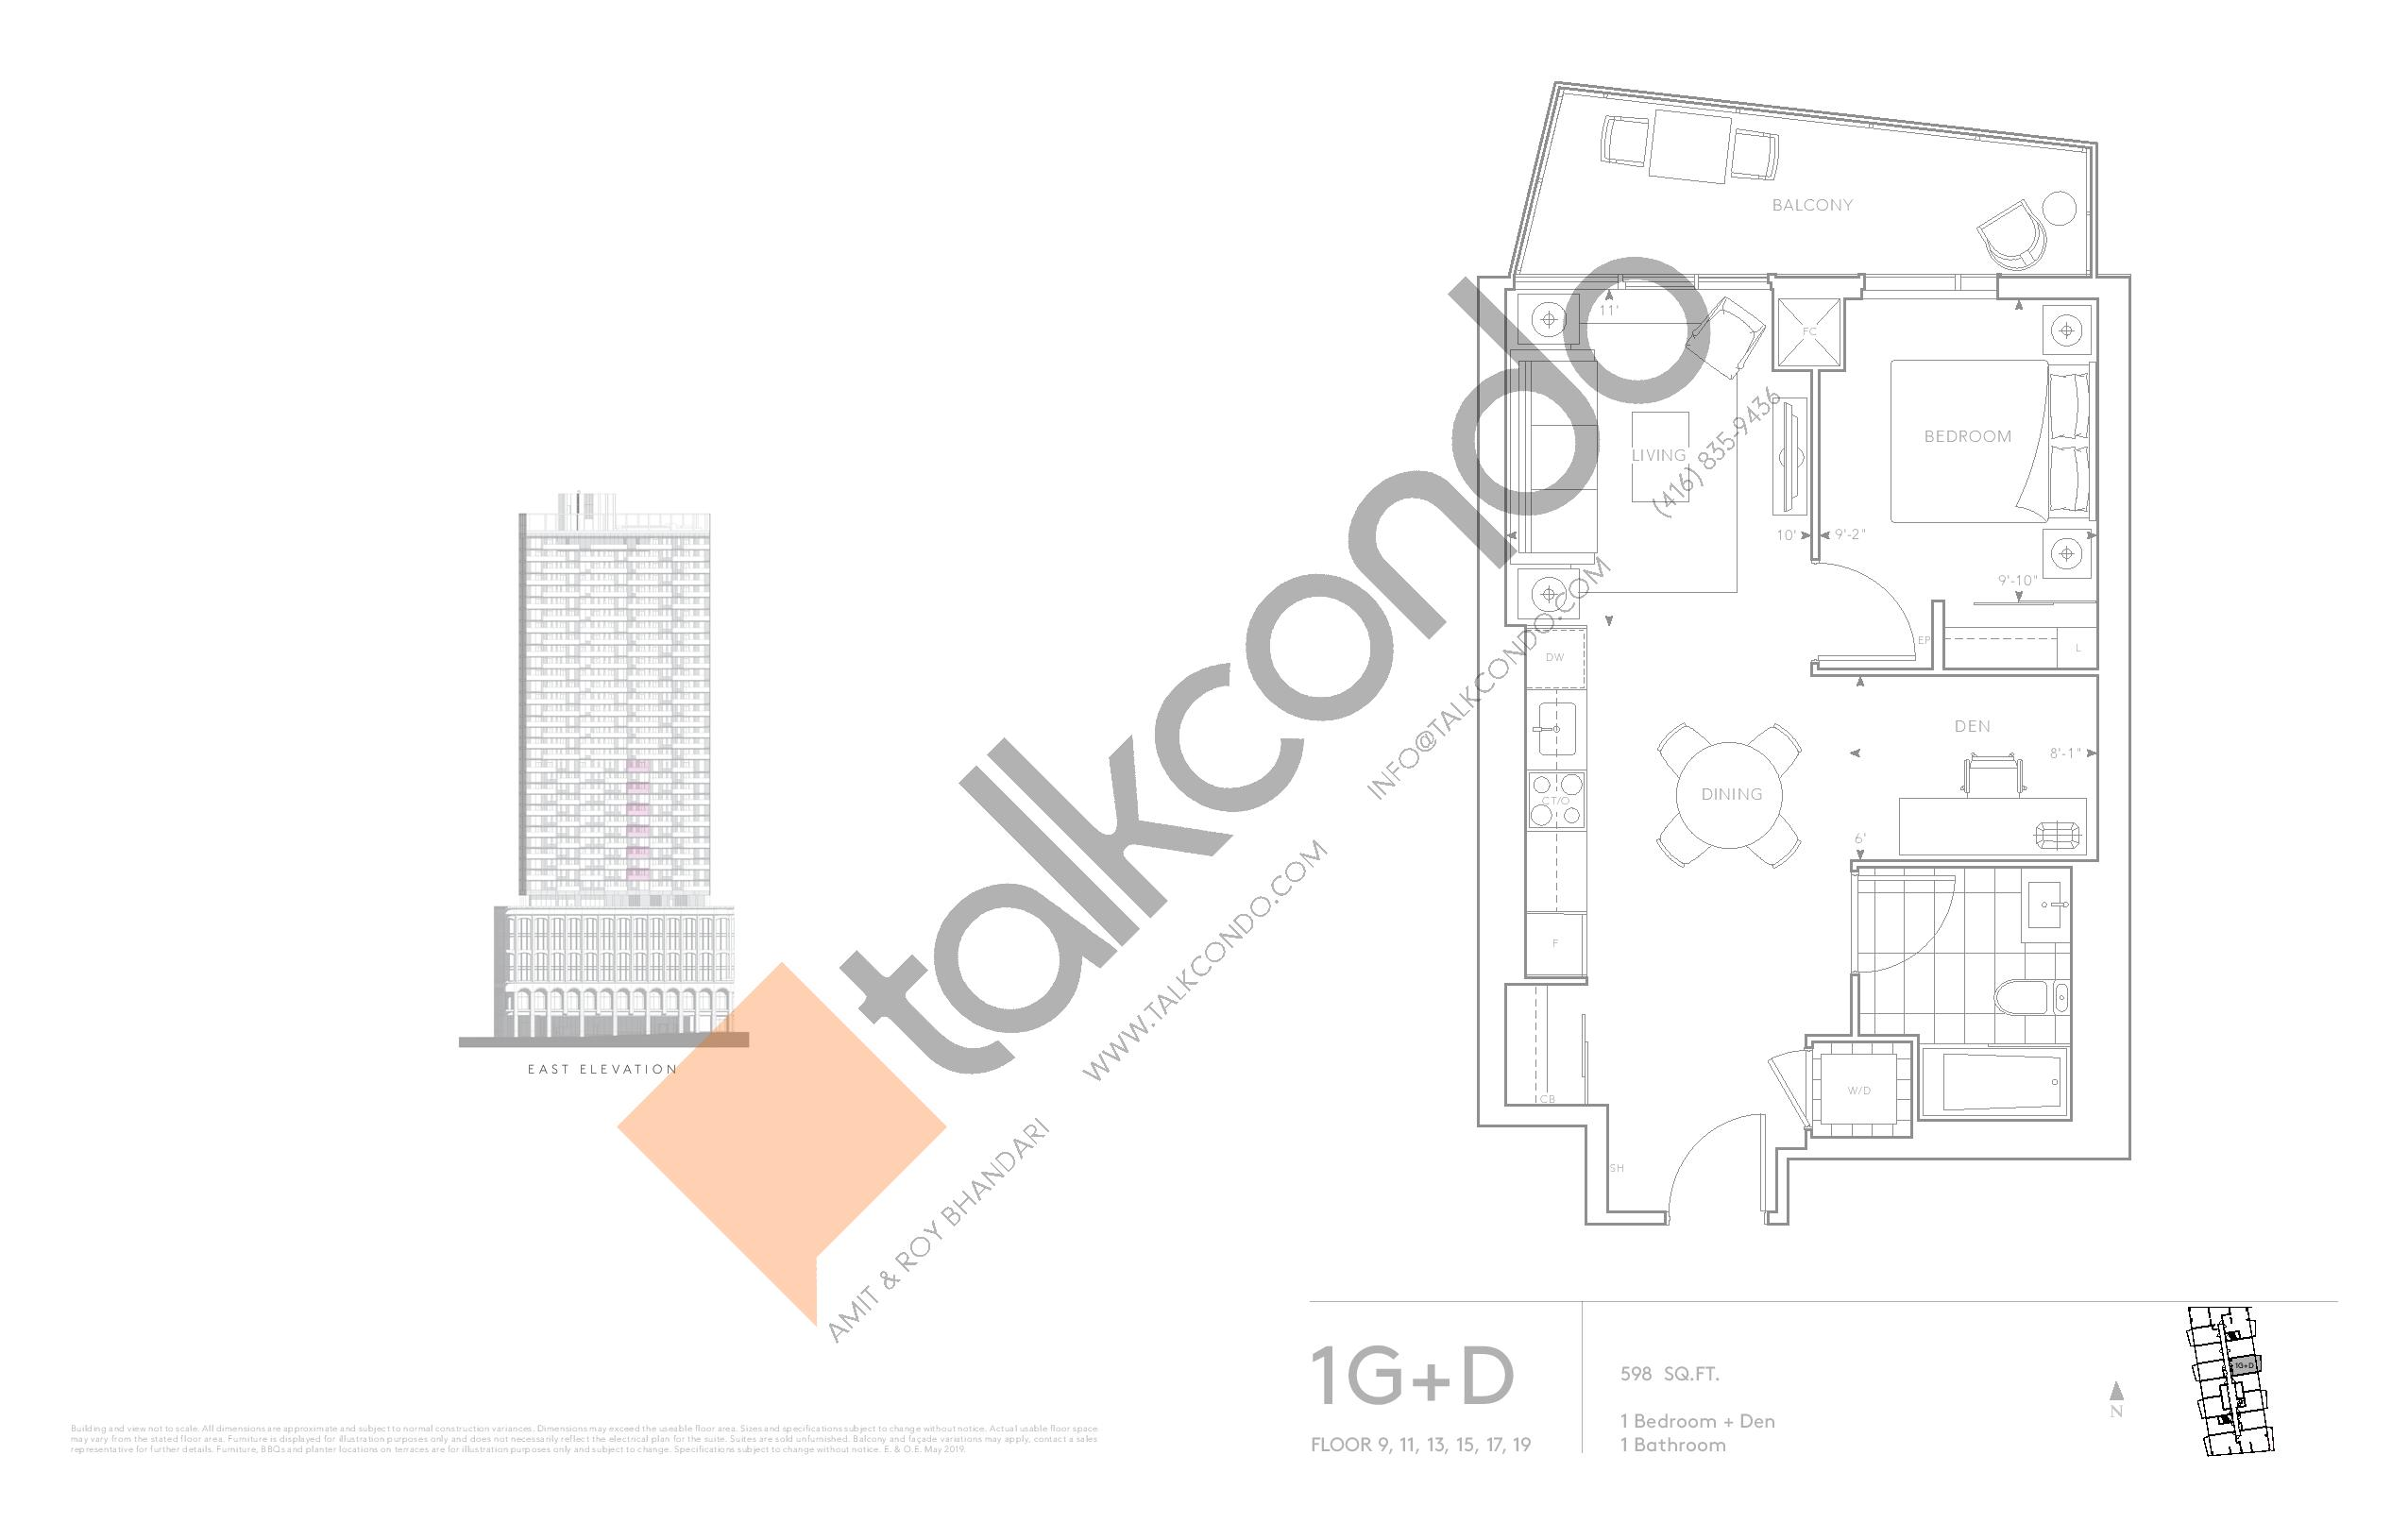 1G+D - Classic Series Floor Plan at Tridel at The Well Condos - 598 sq.ft